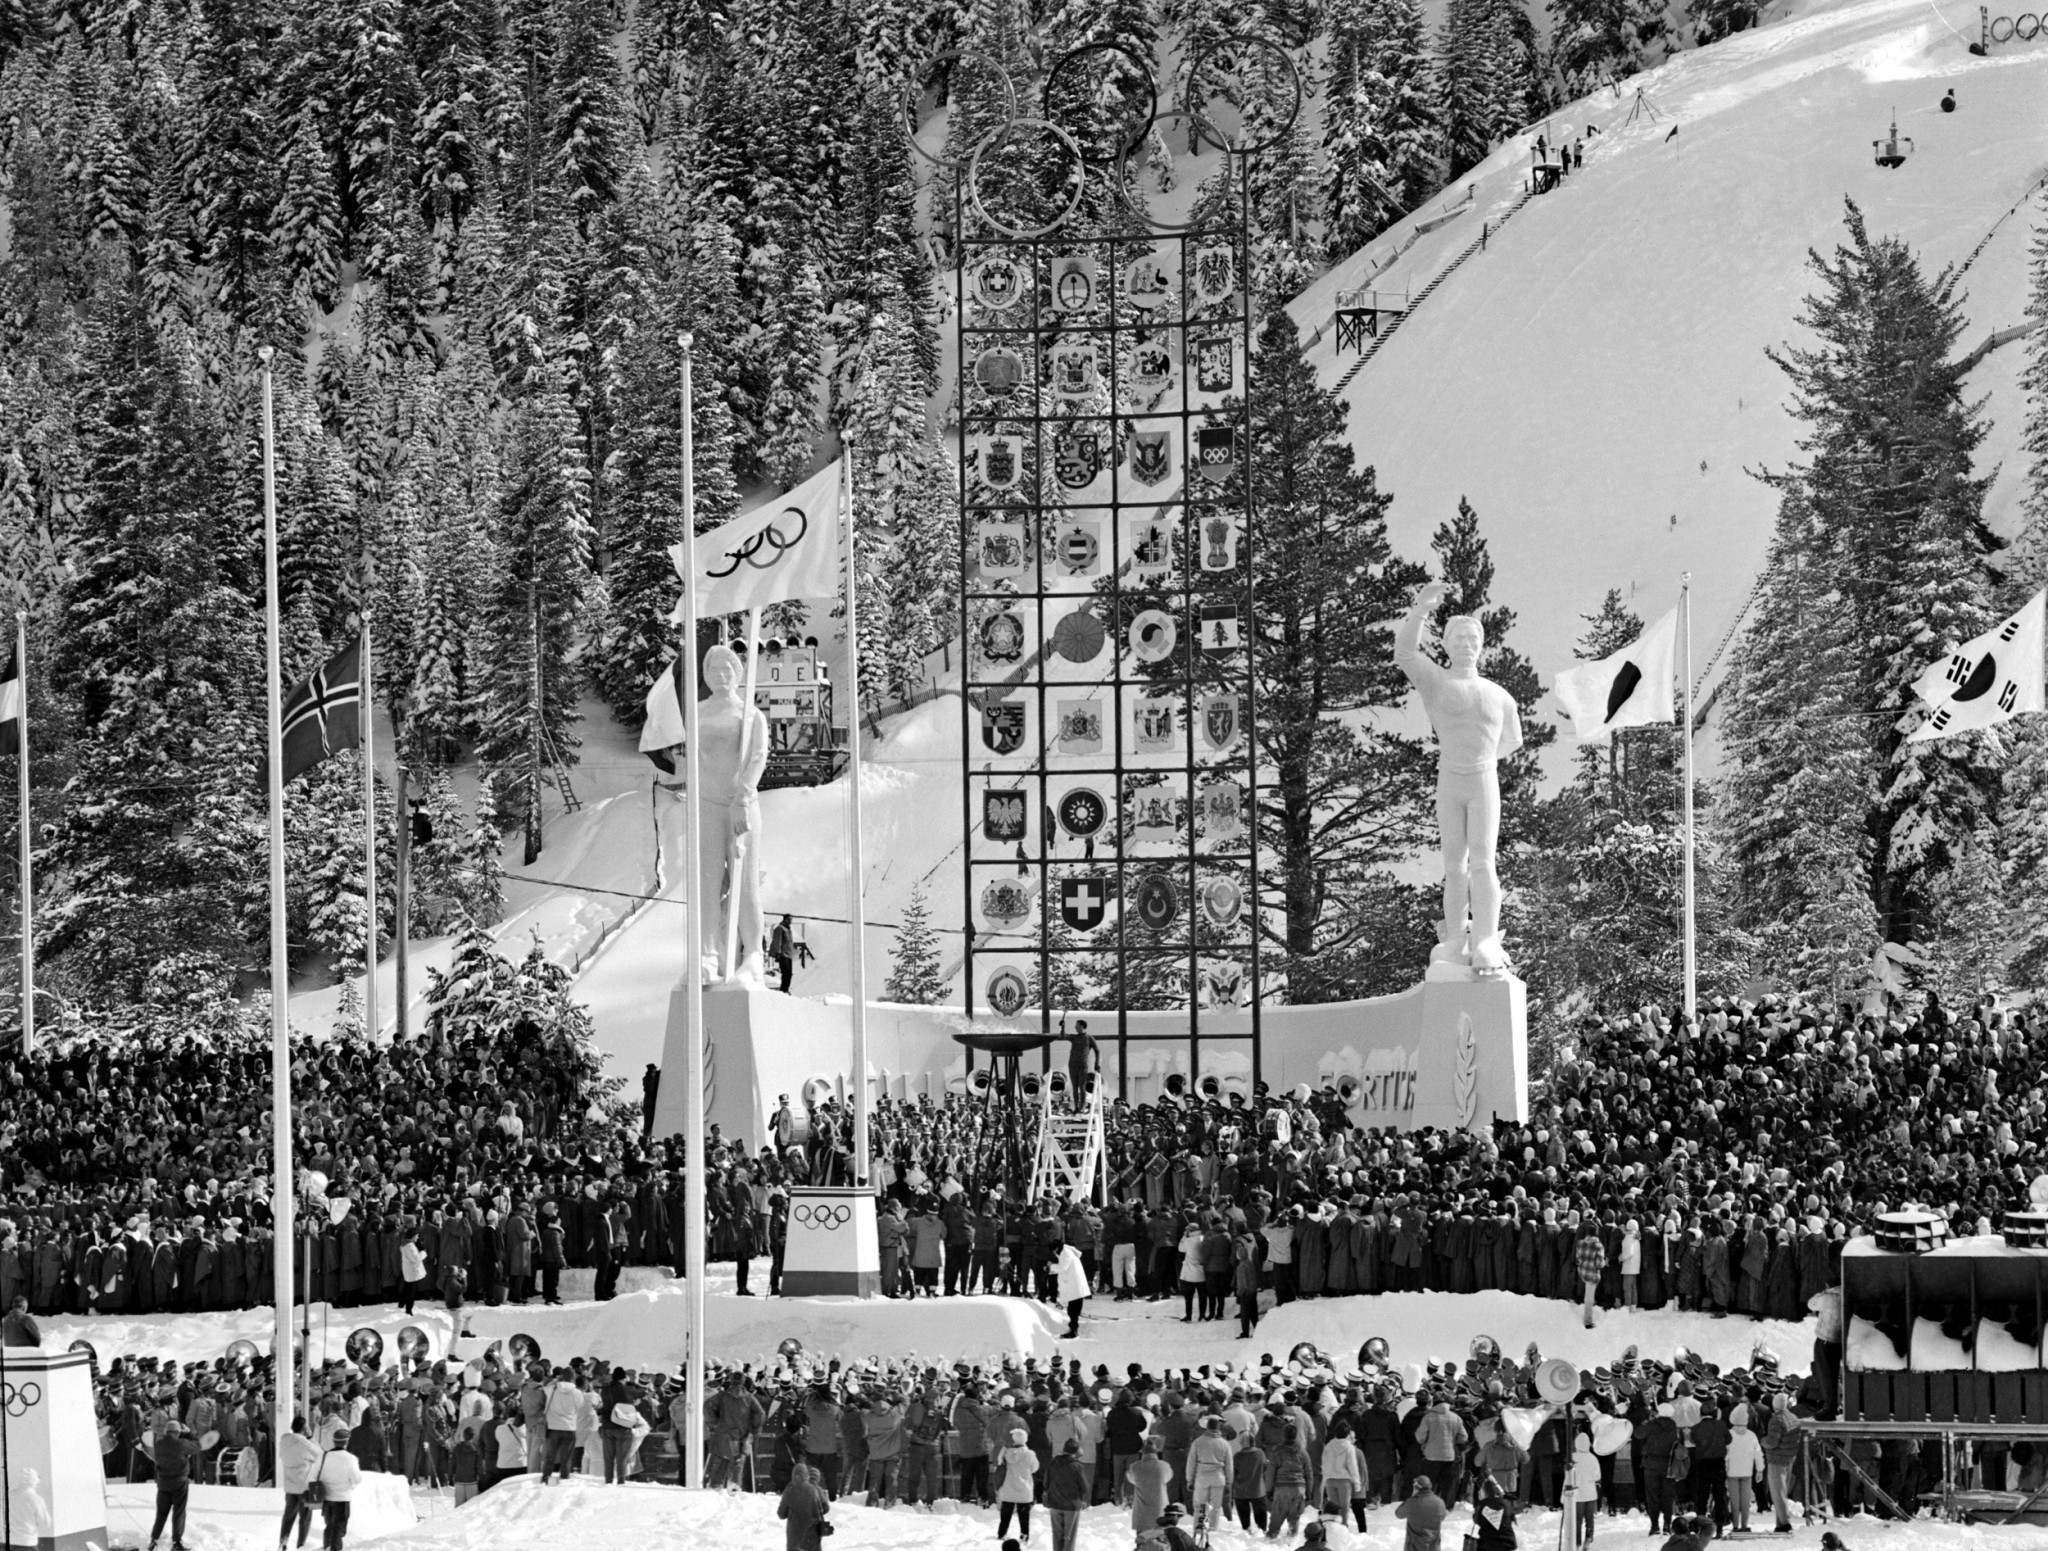 The Olympic flame is lit at Squaw Valley ©Getty Images